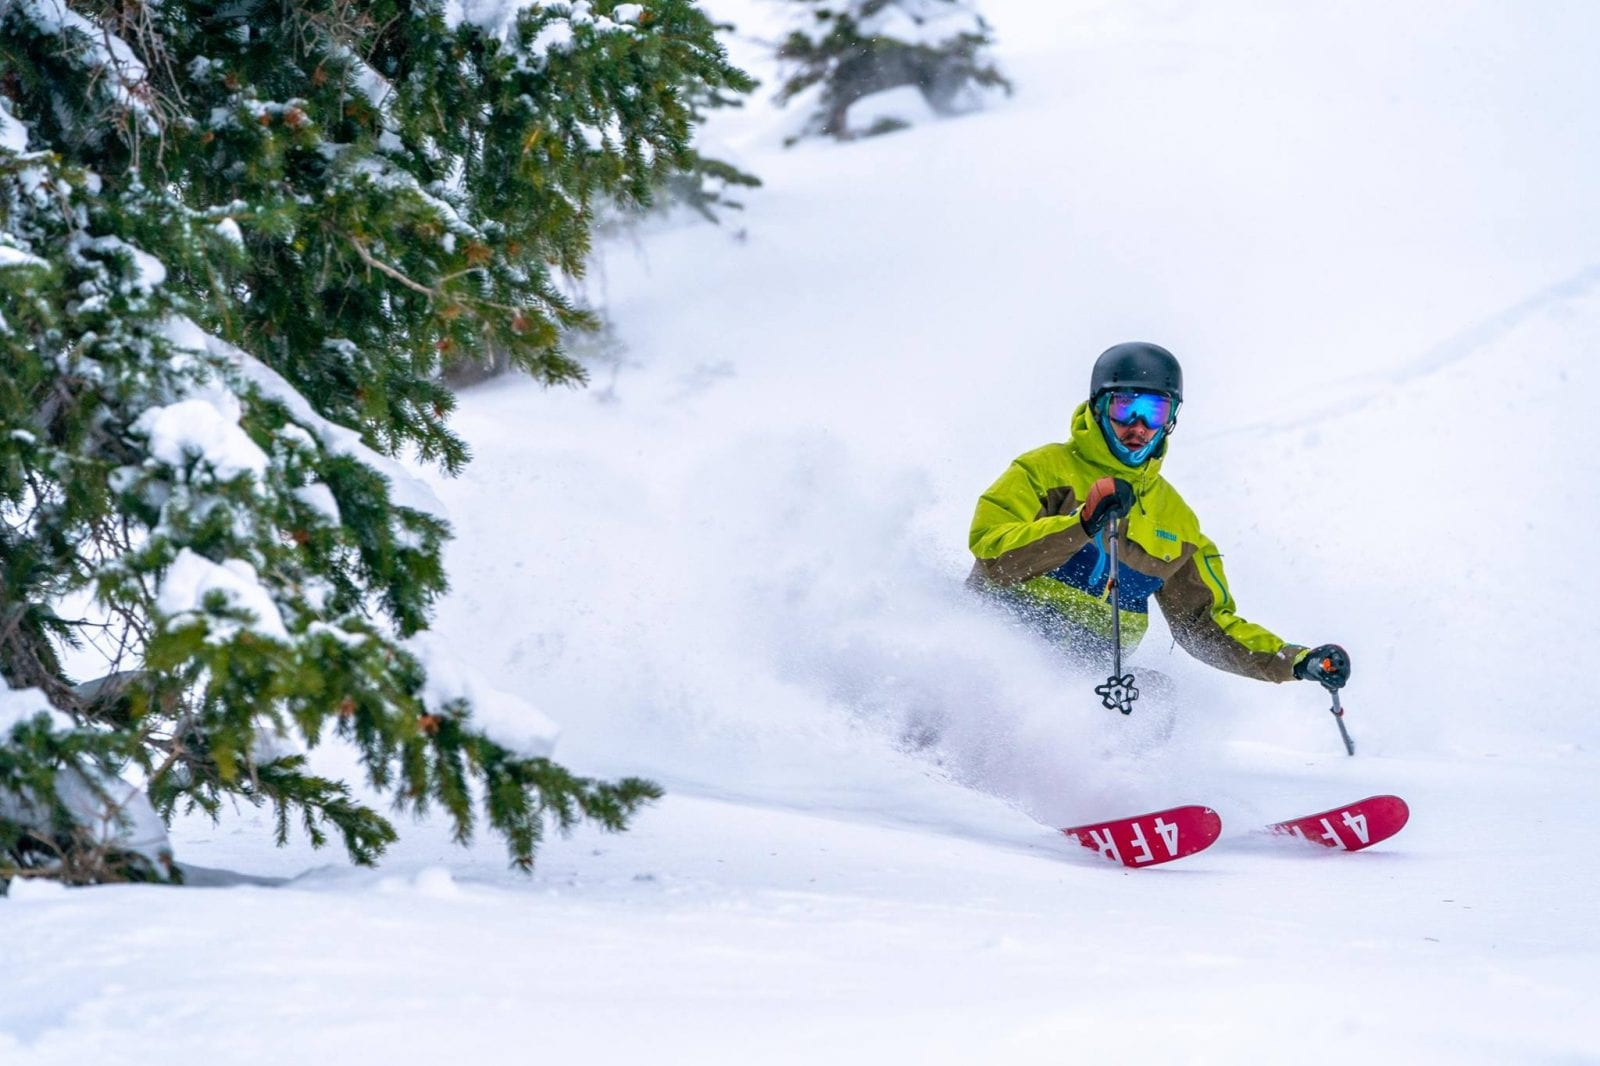 Image of a skier in neon going down the slopes at Solitude Mountain in Utah